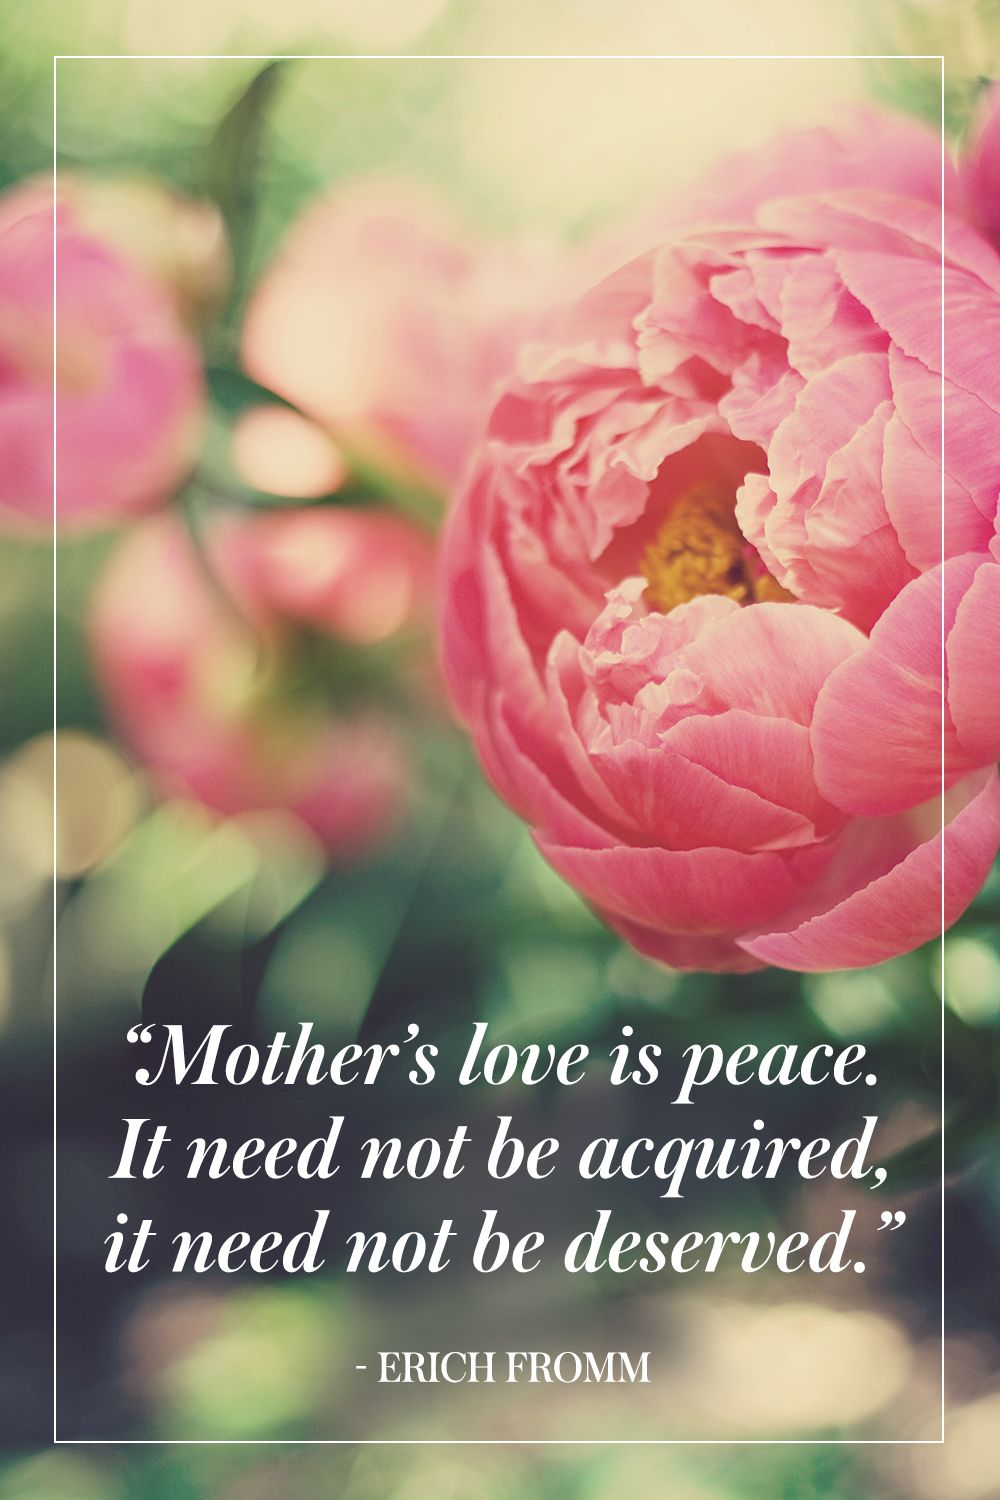 """""""Mother's love is peace. It need not be acquired, it need not be deserved."""" - Erich Fromm"""